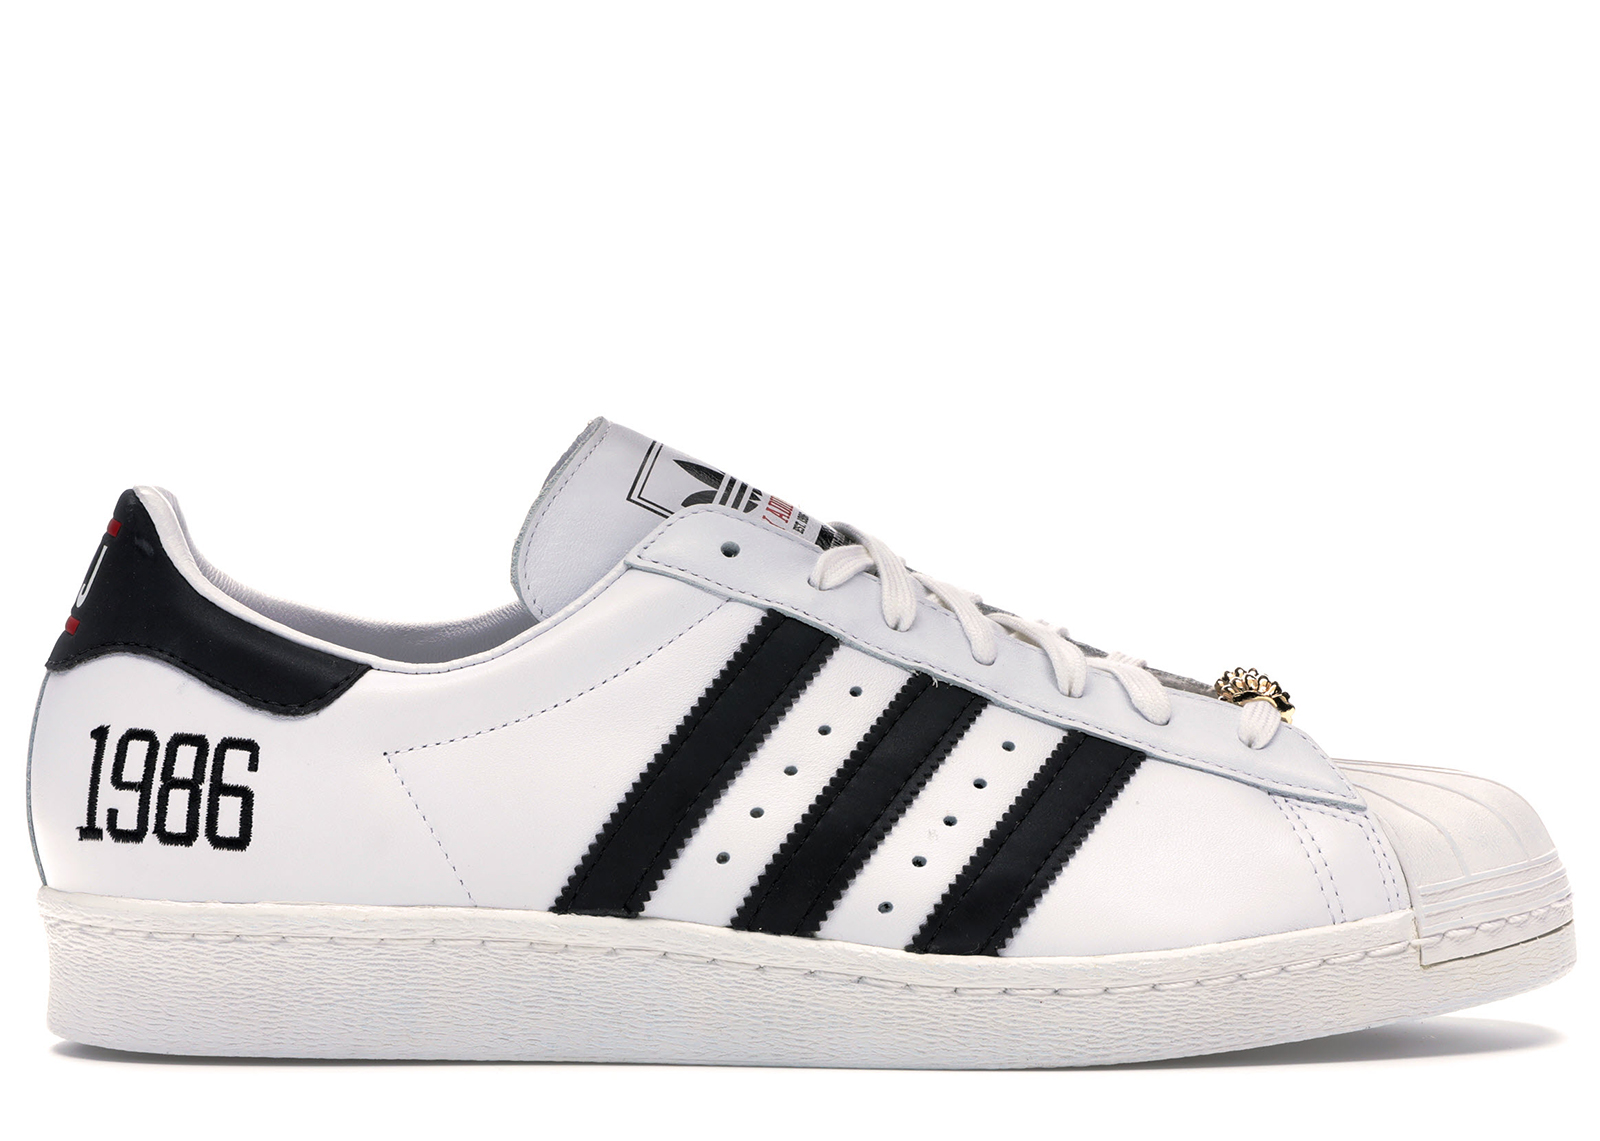 adidas Superstar 80s My adidas Run DMC 25th Anniversary G48910